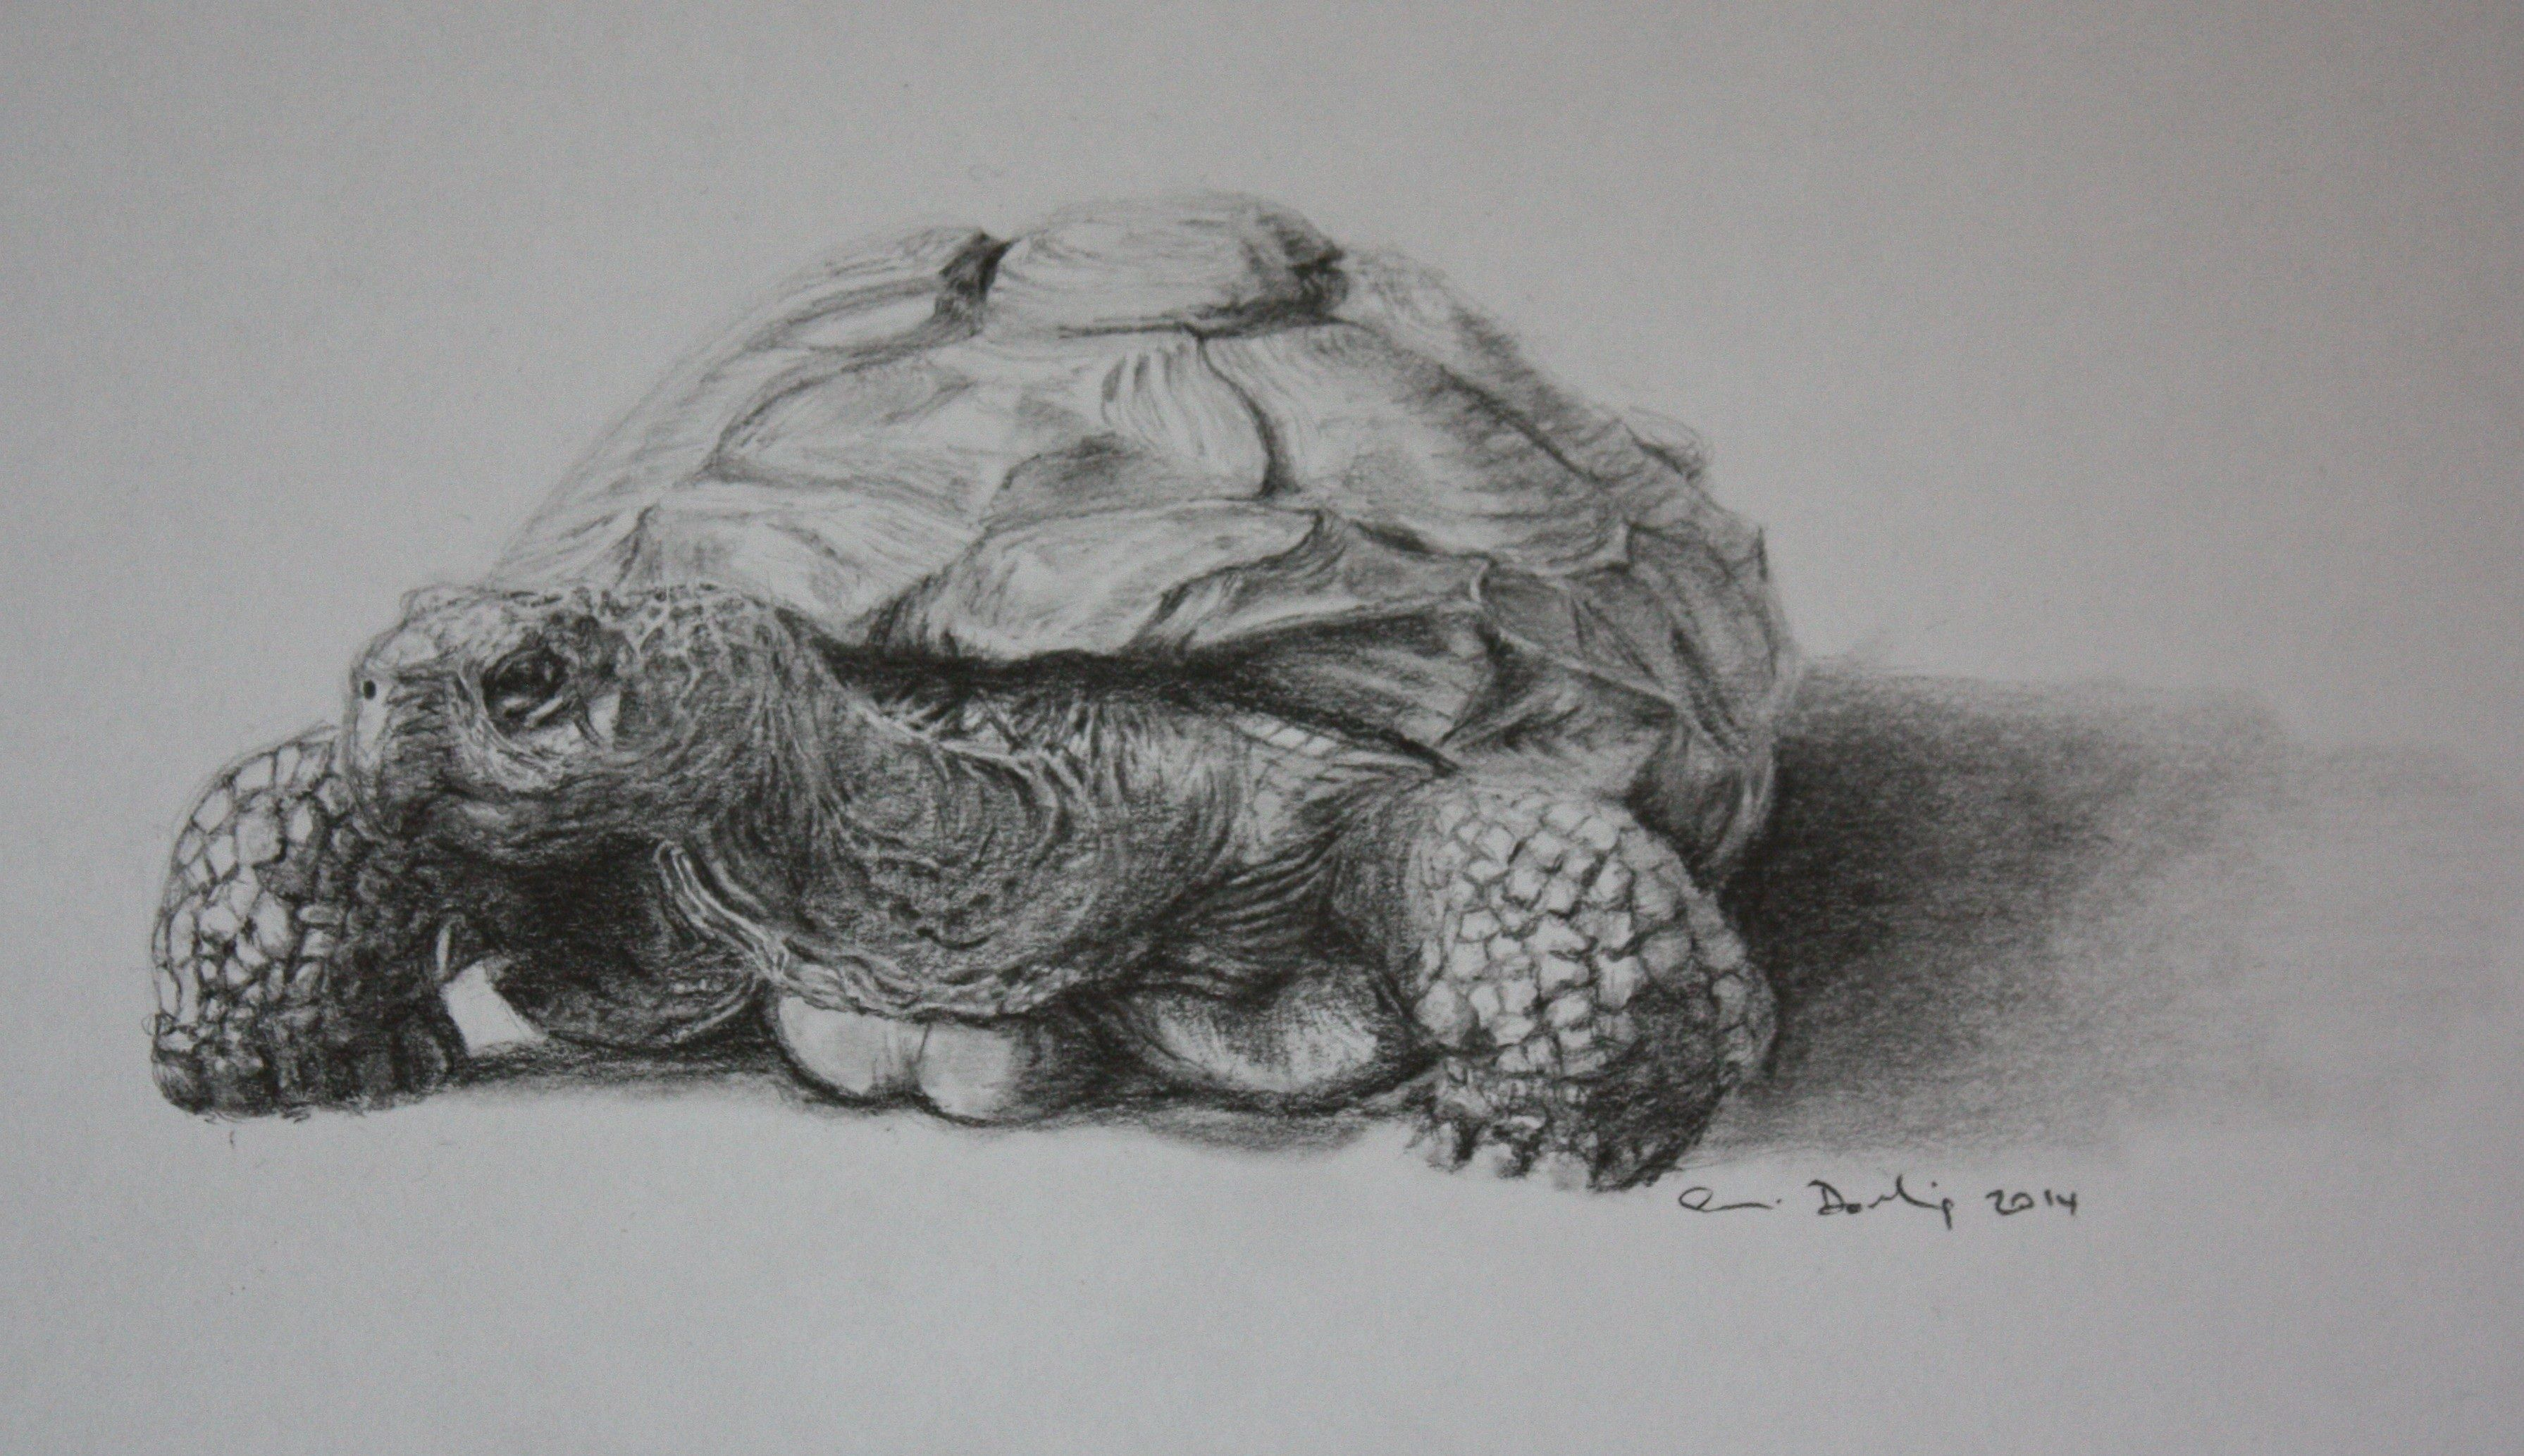 Giant tortoise named colombo graphite sketch by simon darling 龟